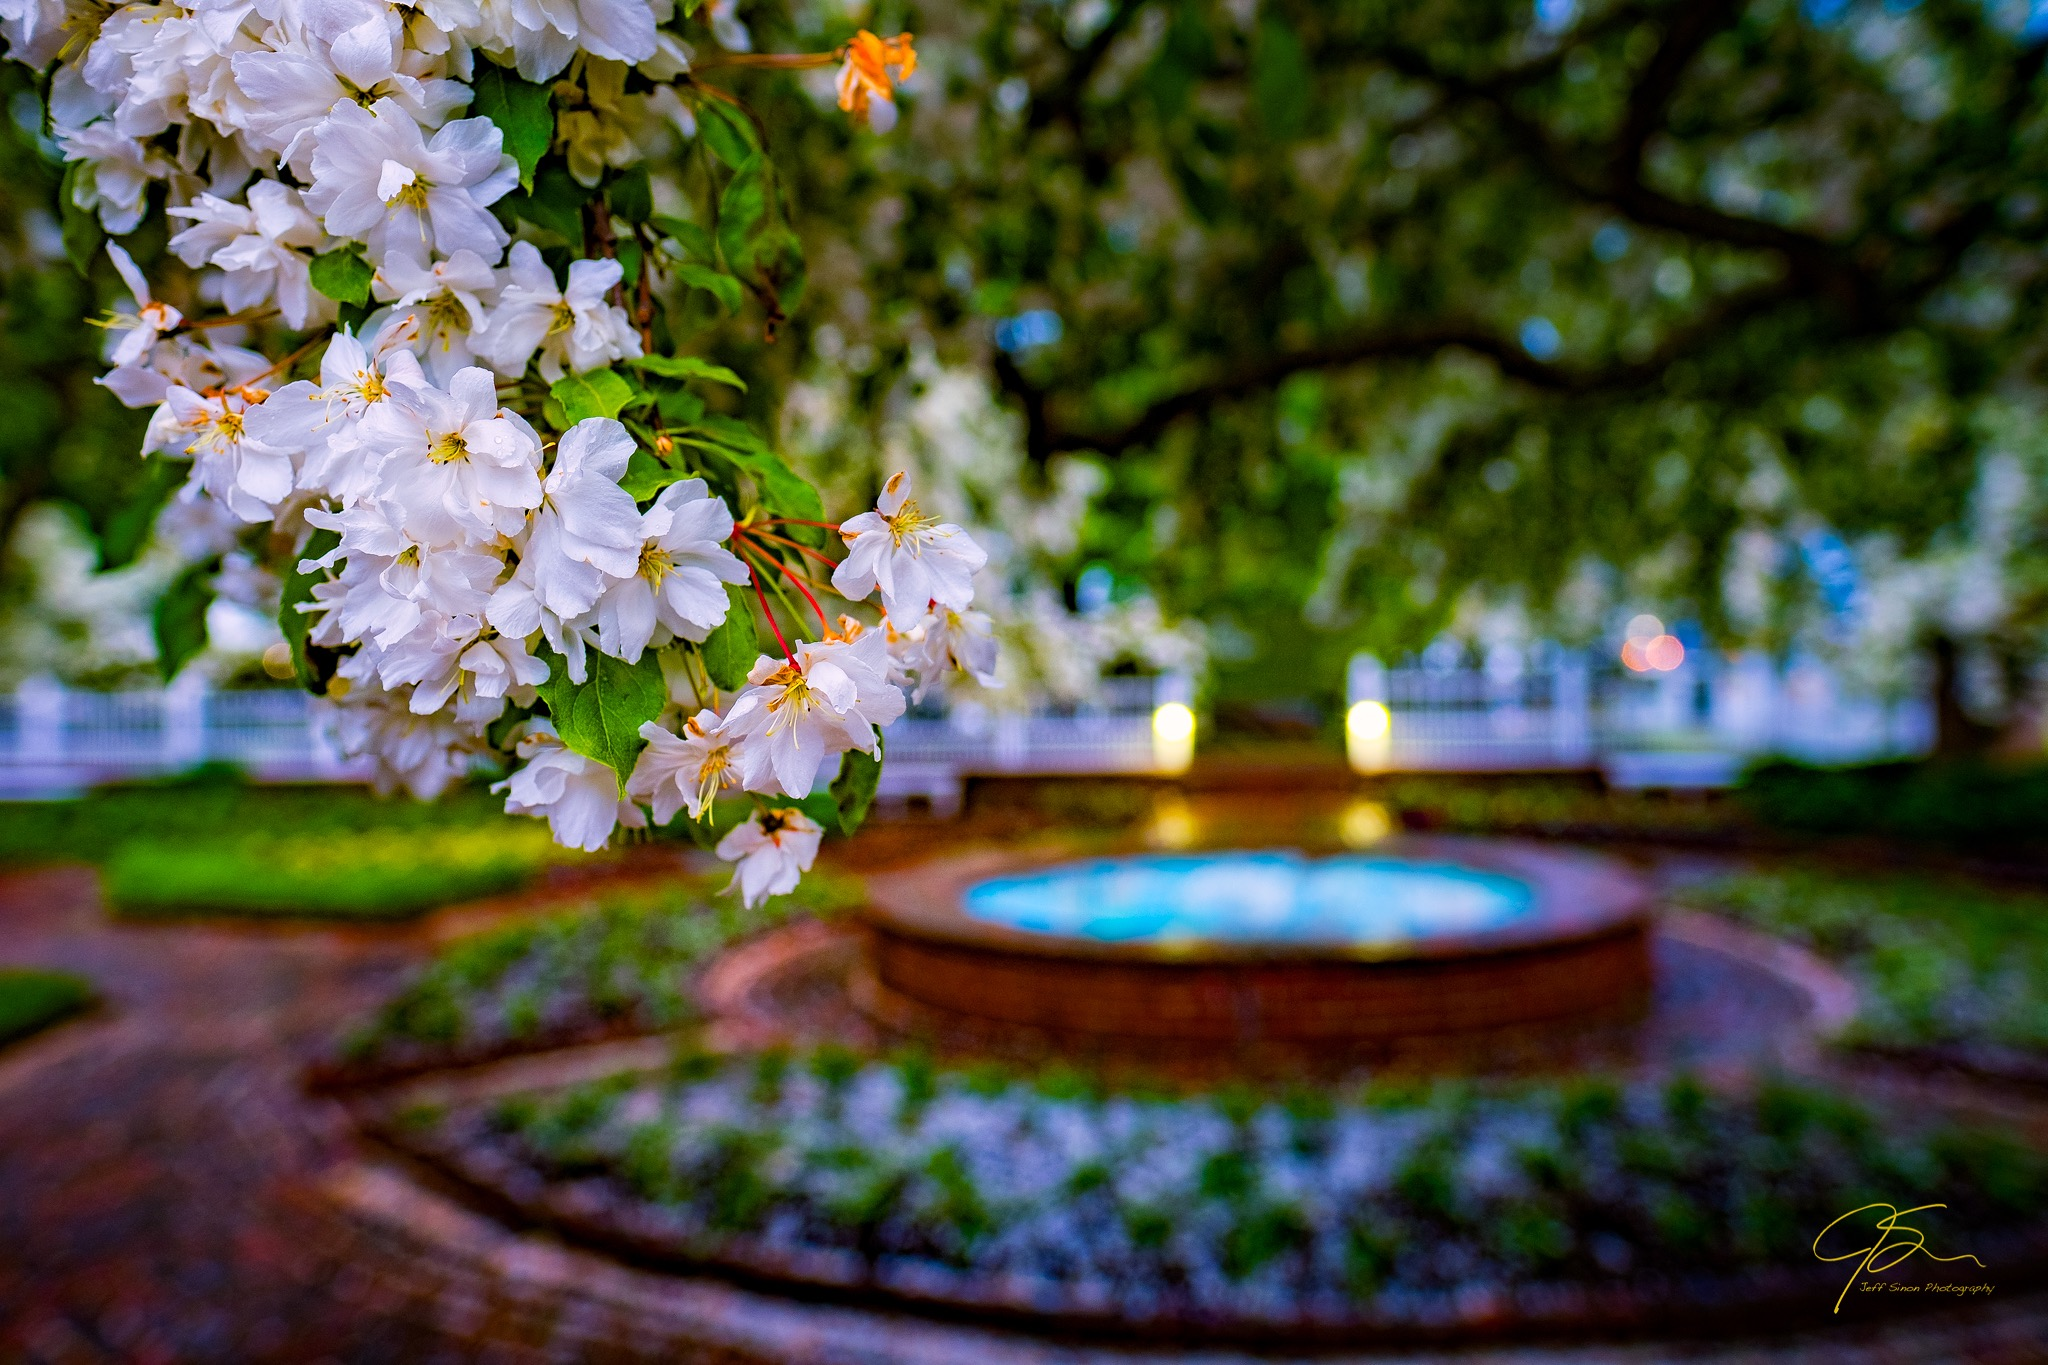 closeup of cherry blossoms with brick paths and water fountain in the background